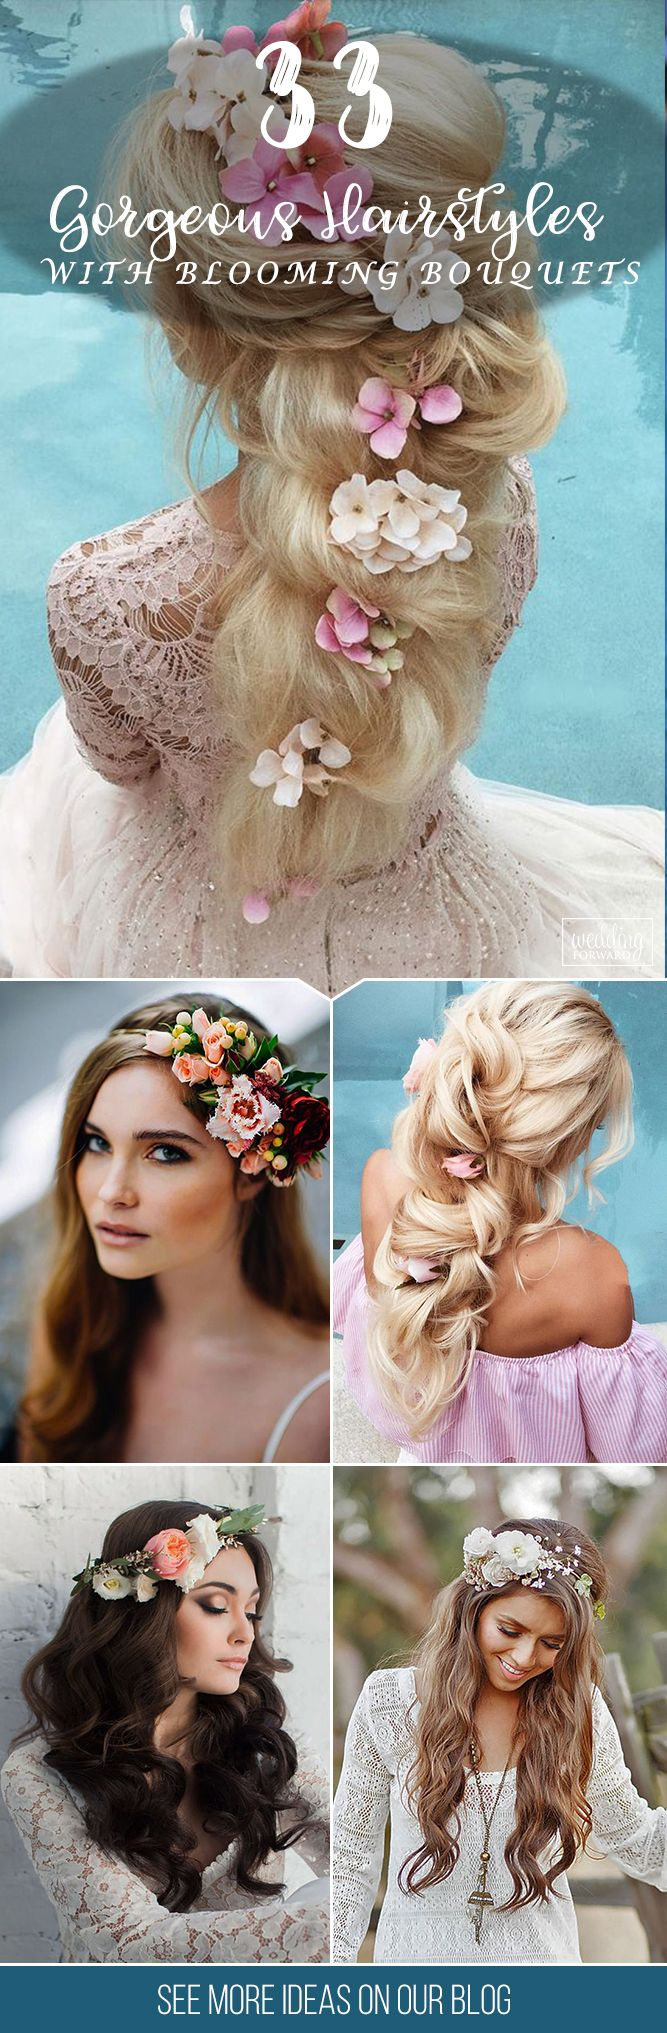 33 Gorgeous Blooming Wedding Hair Bouquets ❤ Floral crowns and blooming weddin...